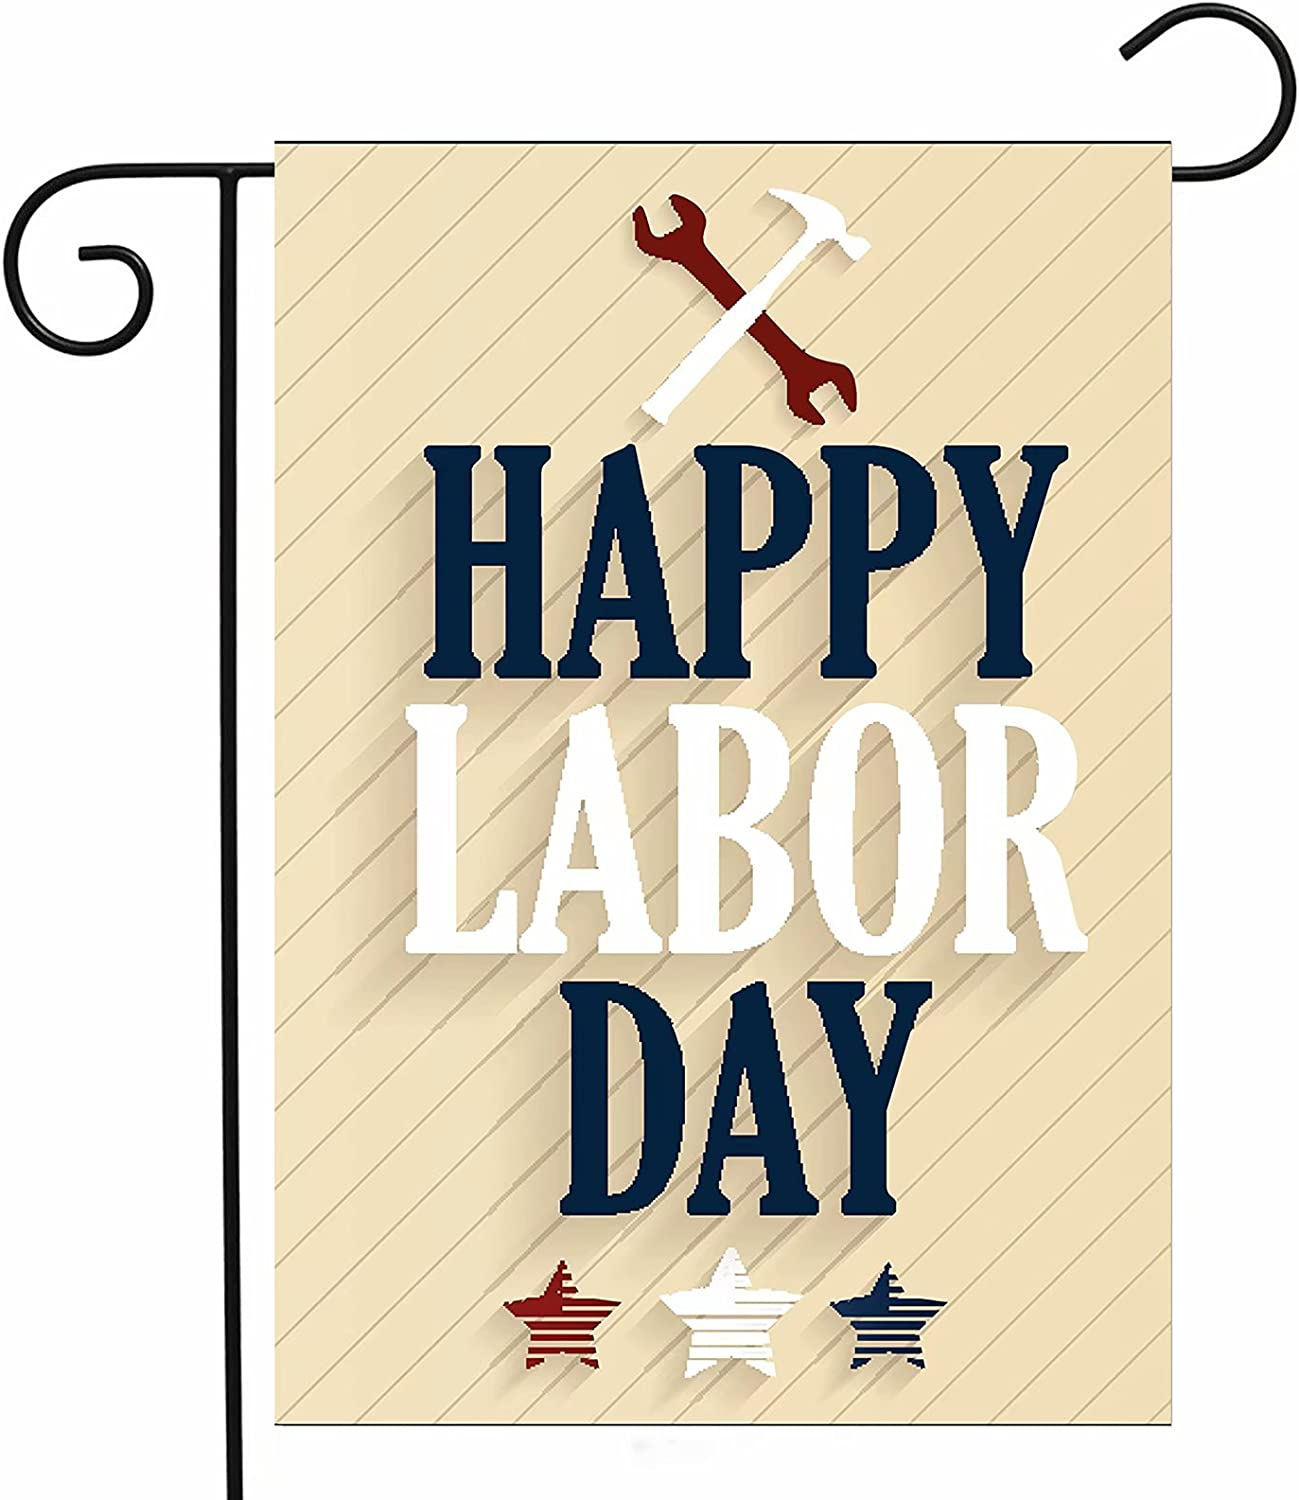 """ShineSnow Happy Labor Day Stars Garden Yard Flag 12""""x 18"""" Double Sided, Polyester Celebrate Labor Day Holiday Welcome House Flag Banners for Patio Lawn Outdoor Home Decor"""